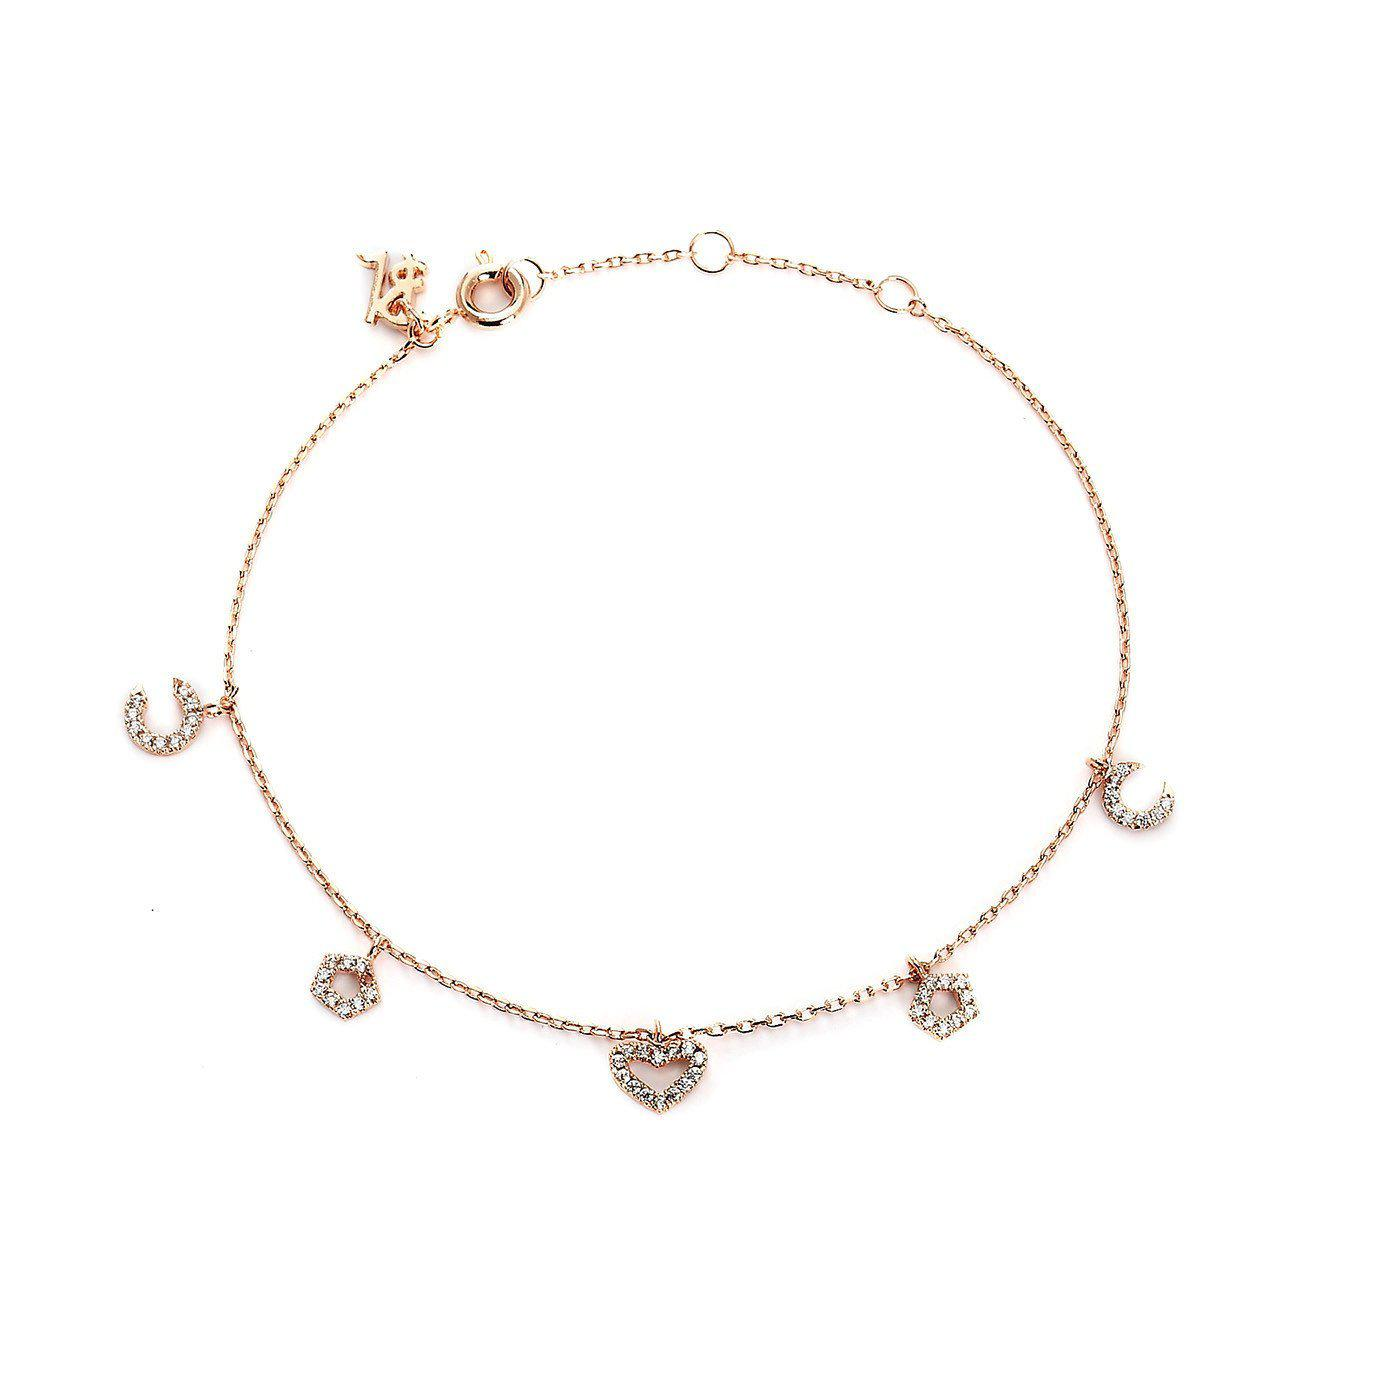 Art Hearty Charm Bracelet-Blinglane